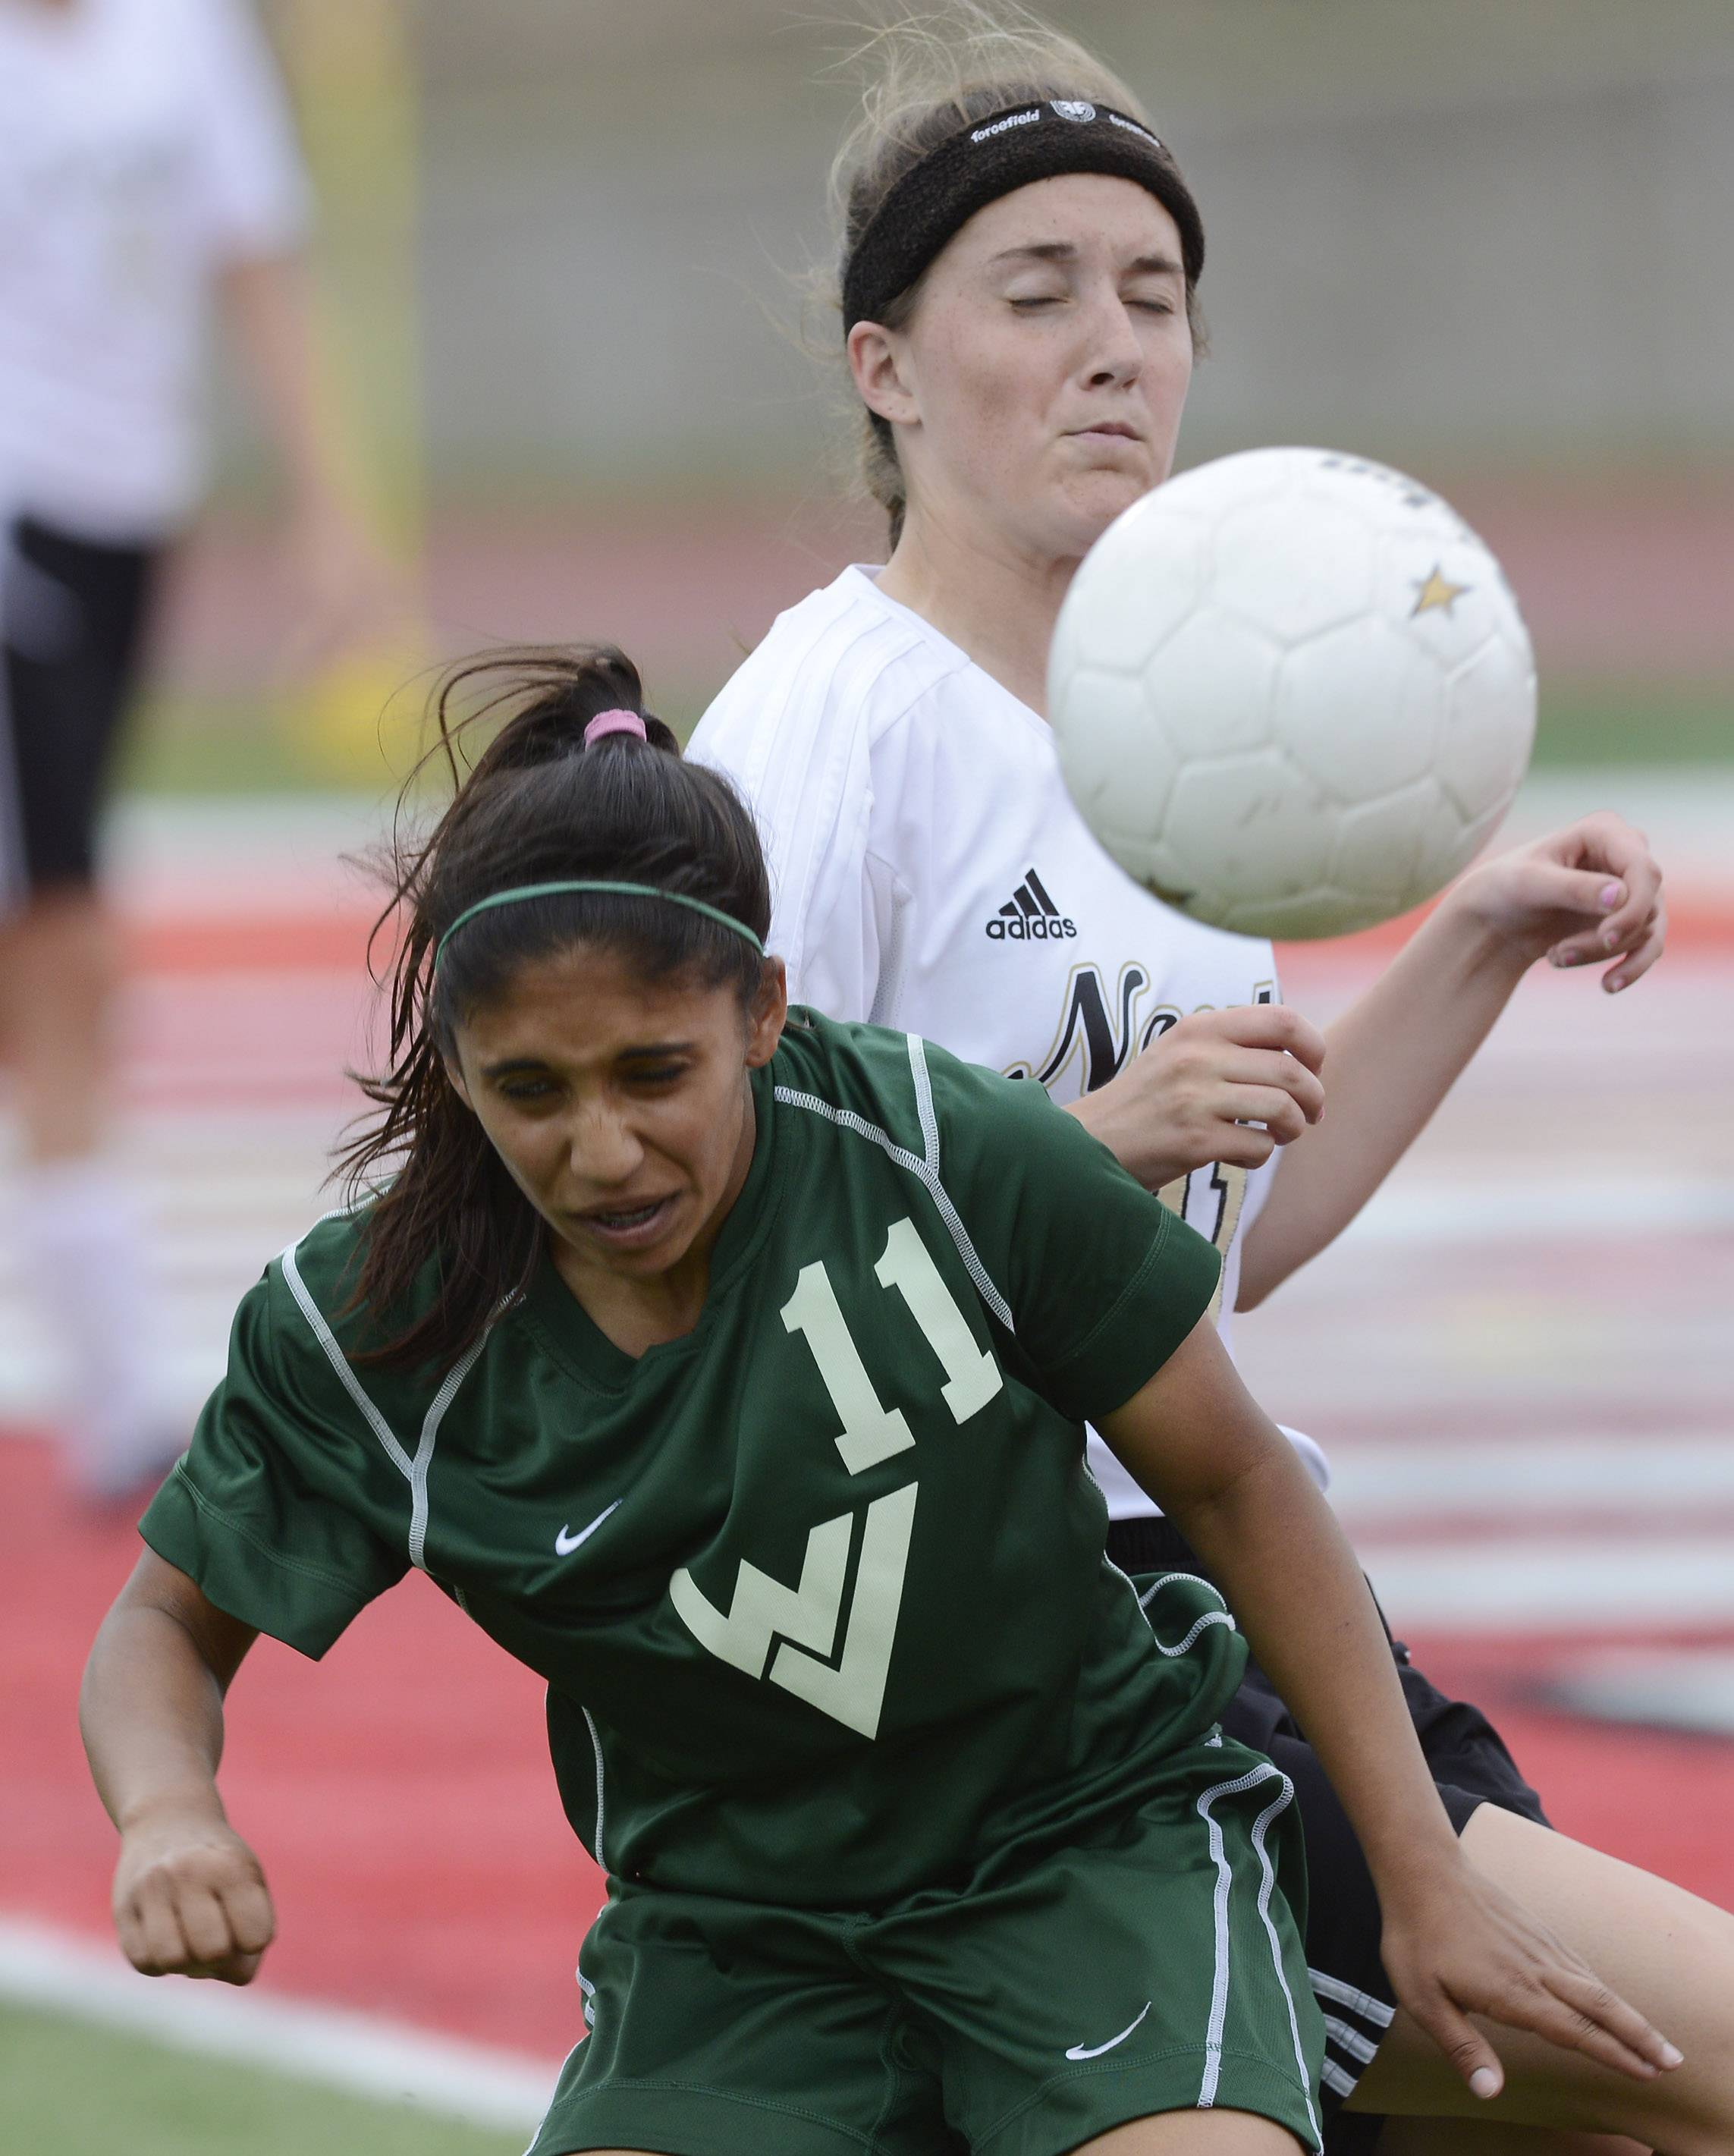 CiCi Gazder of Waubonsie Valley gets in front of Carly Marchal of Lincoln-Way North during the girls soccer Class 3A state third-place game at North Central College in Naperville Saturday.